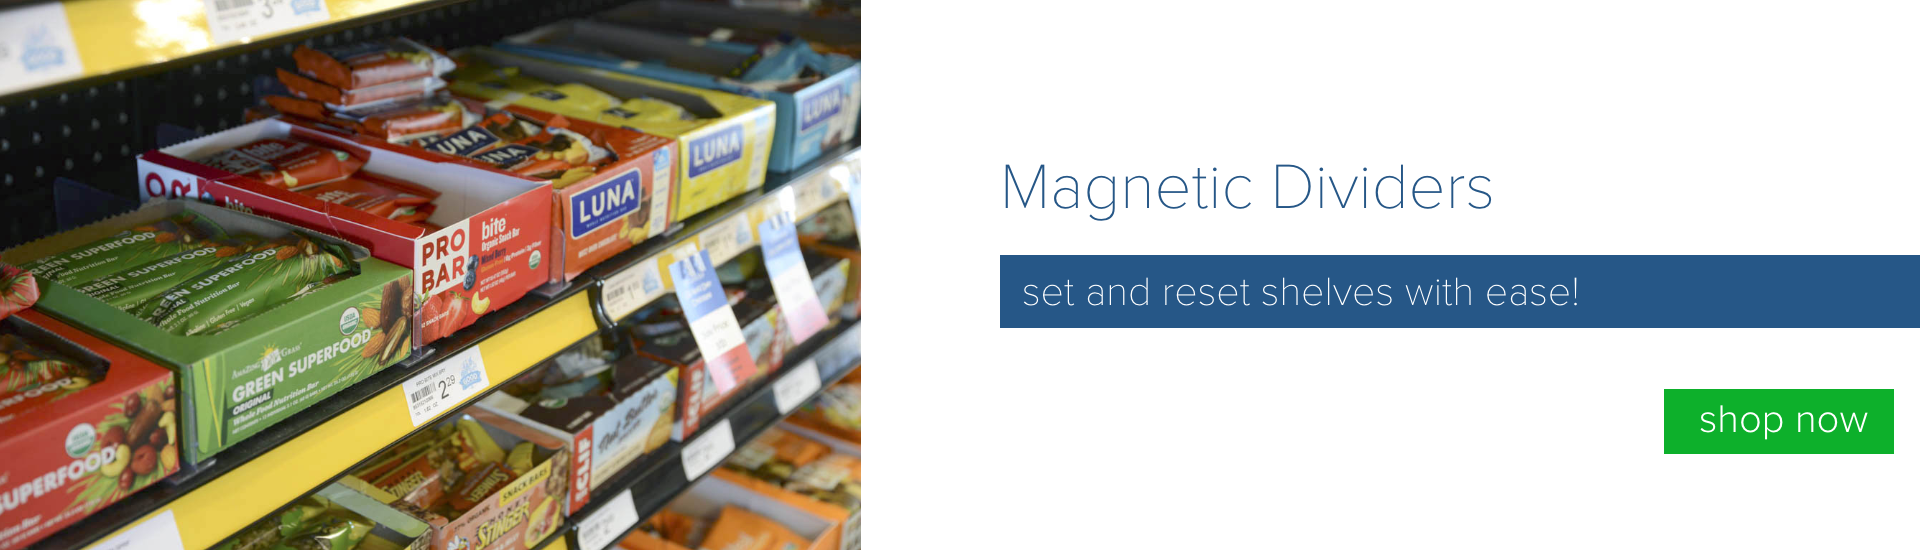 magnetic dividers